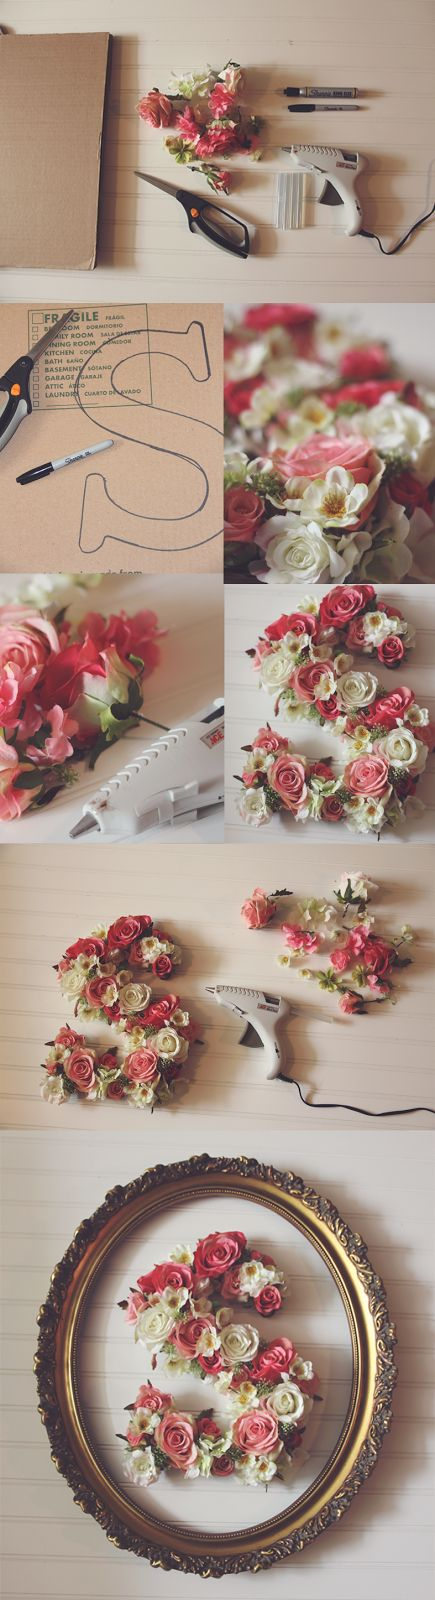 #DIY floral letters spell out a lovely way to repurpose your bouquet!